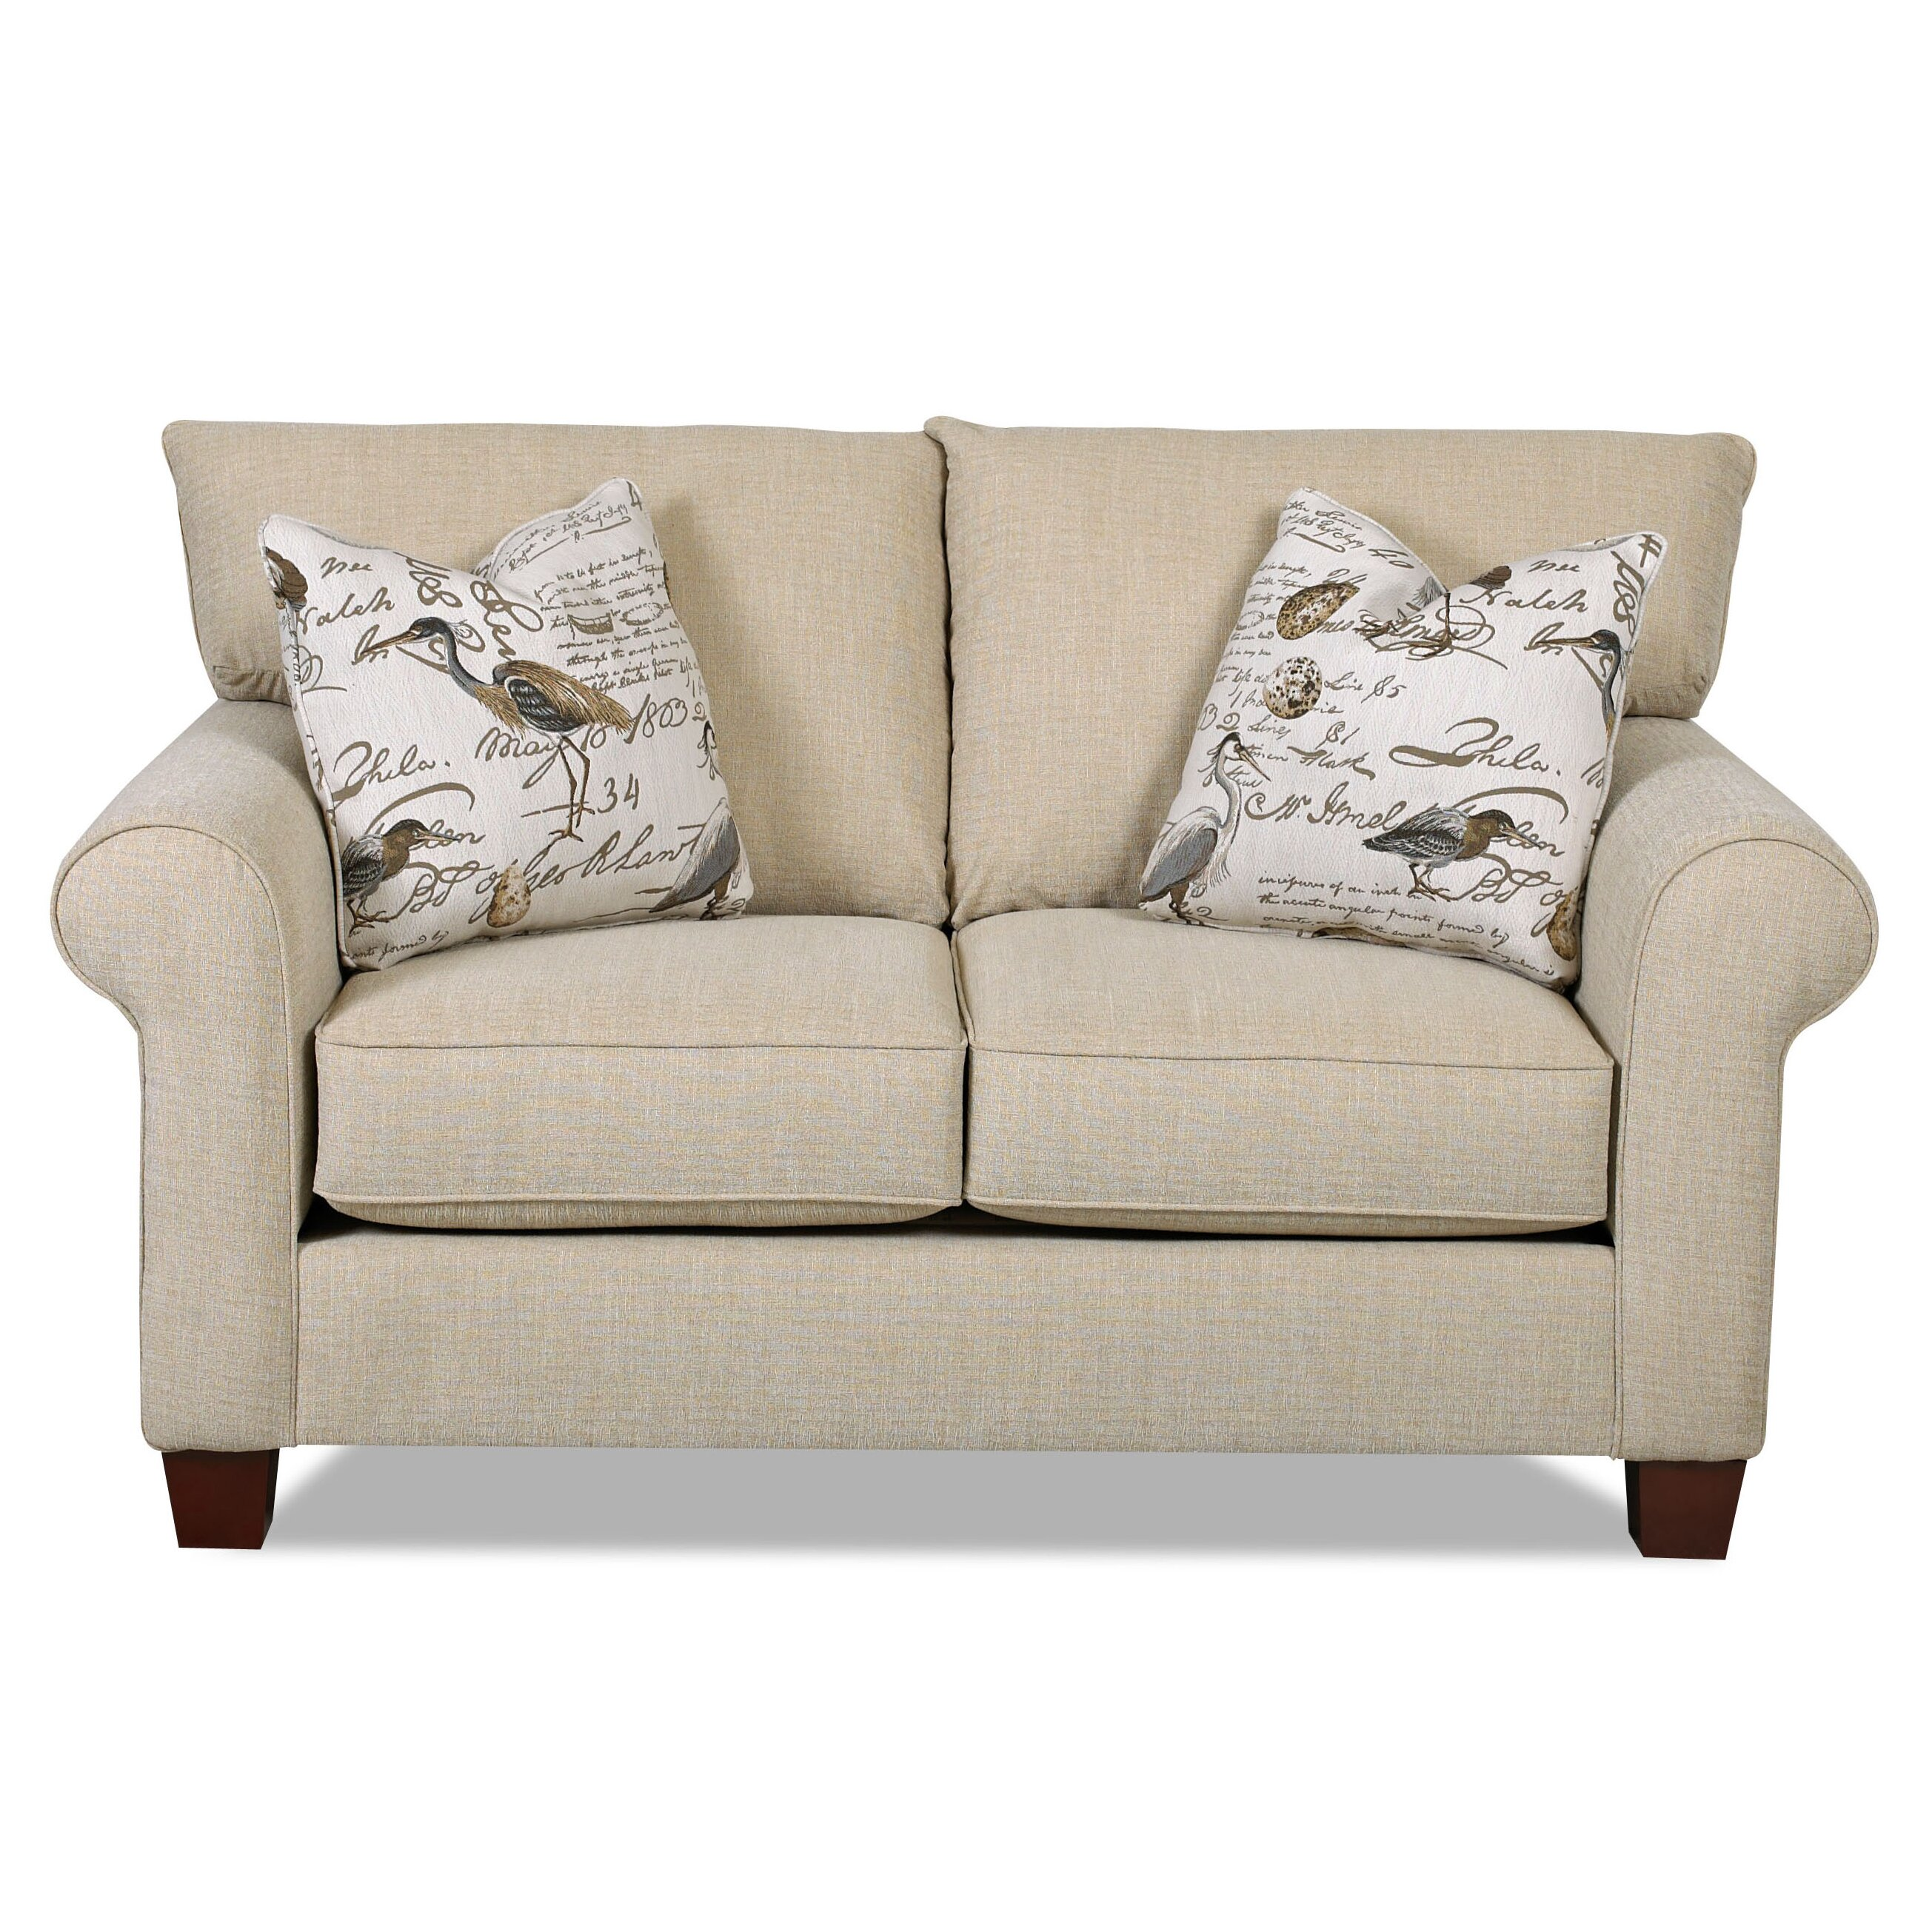 Klaussner Furniture Wheelock Loveseat